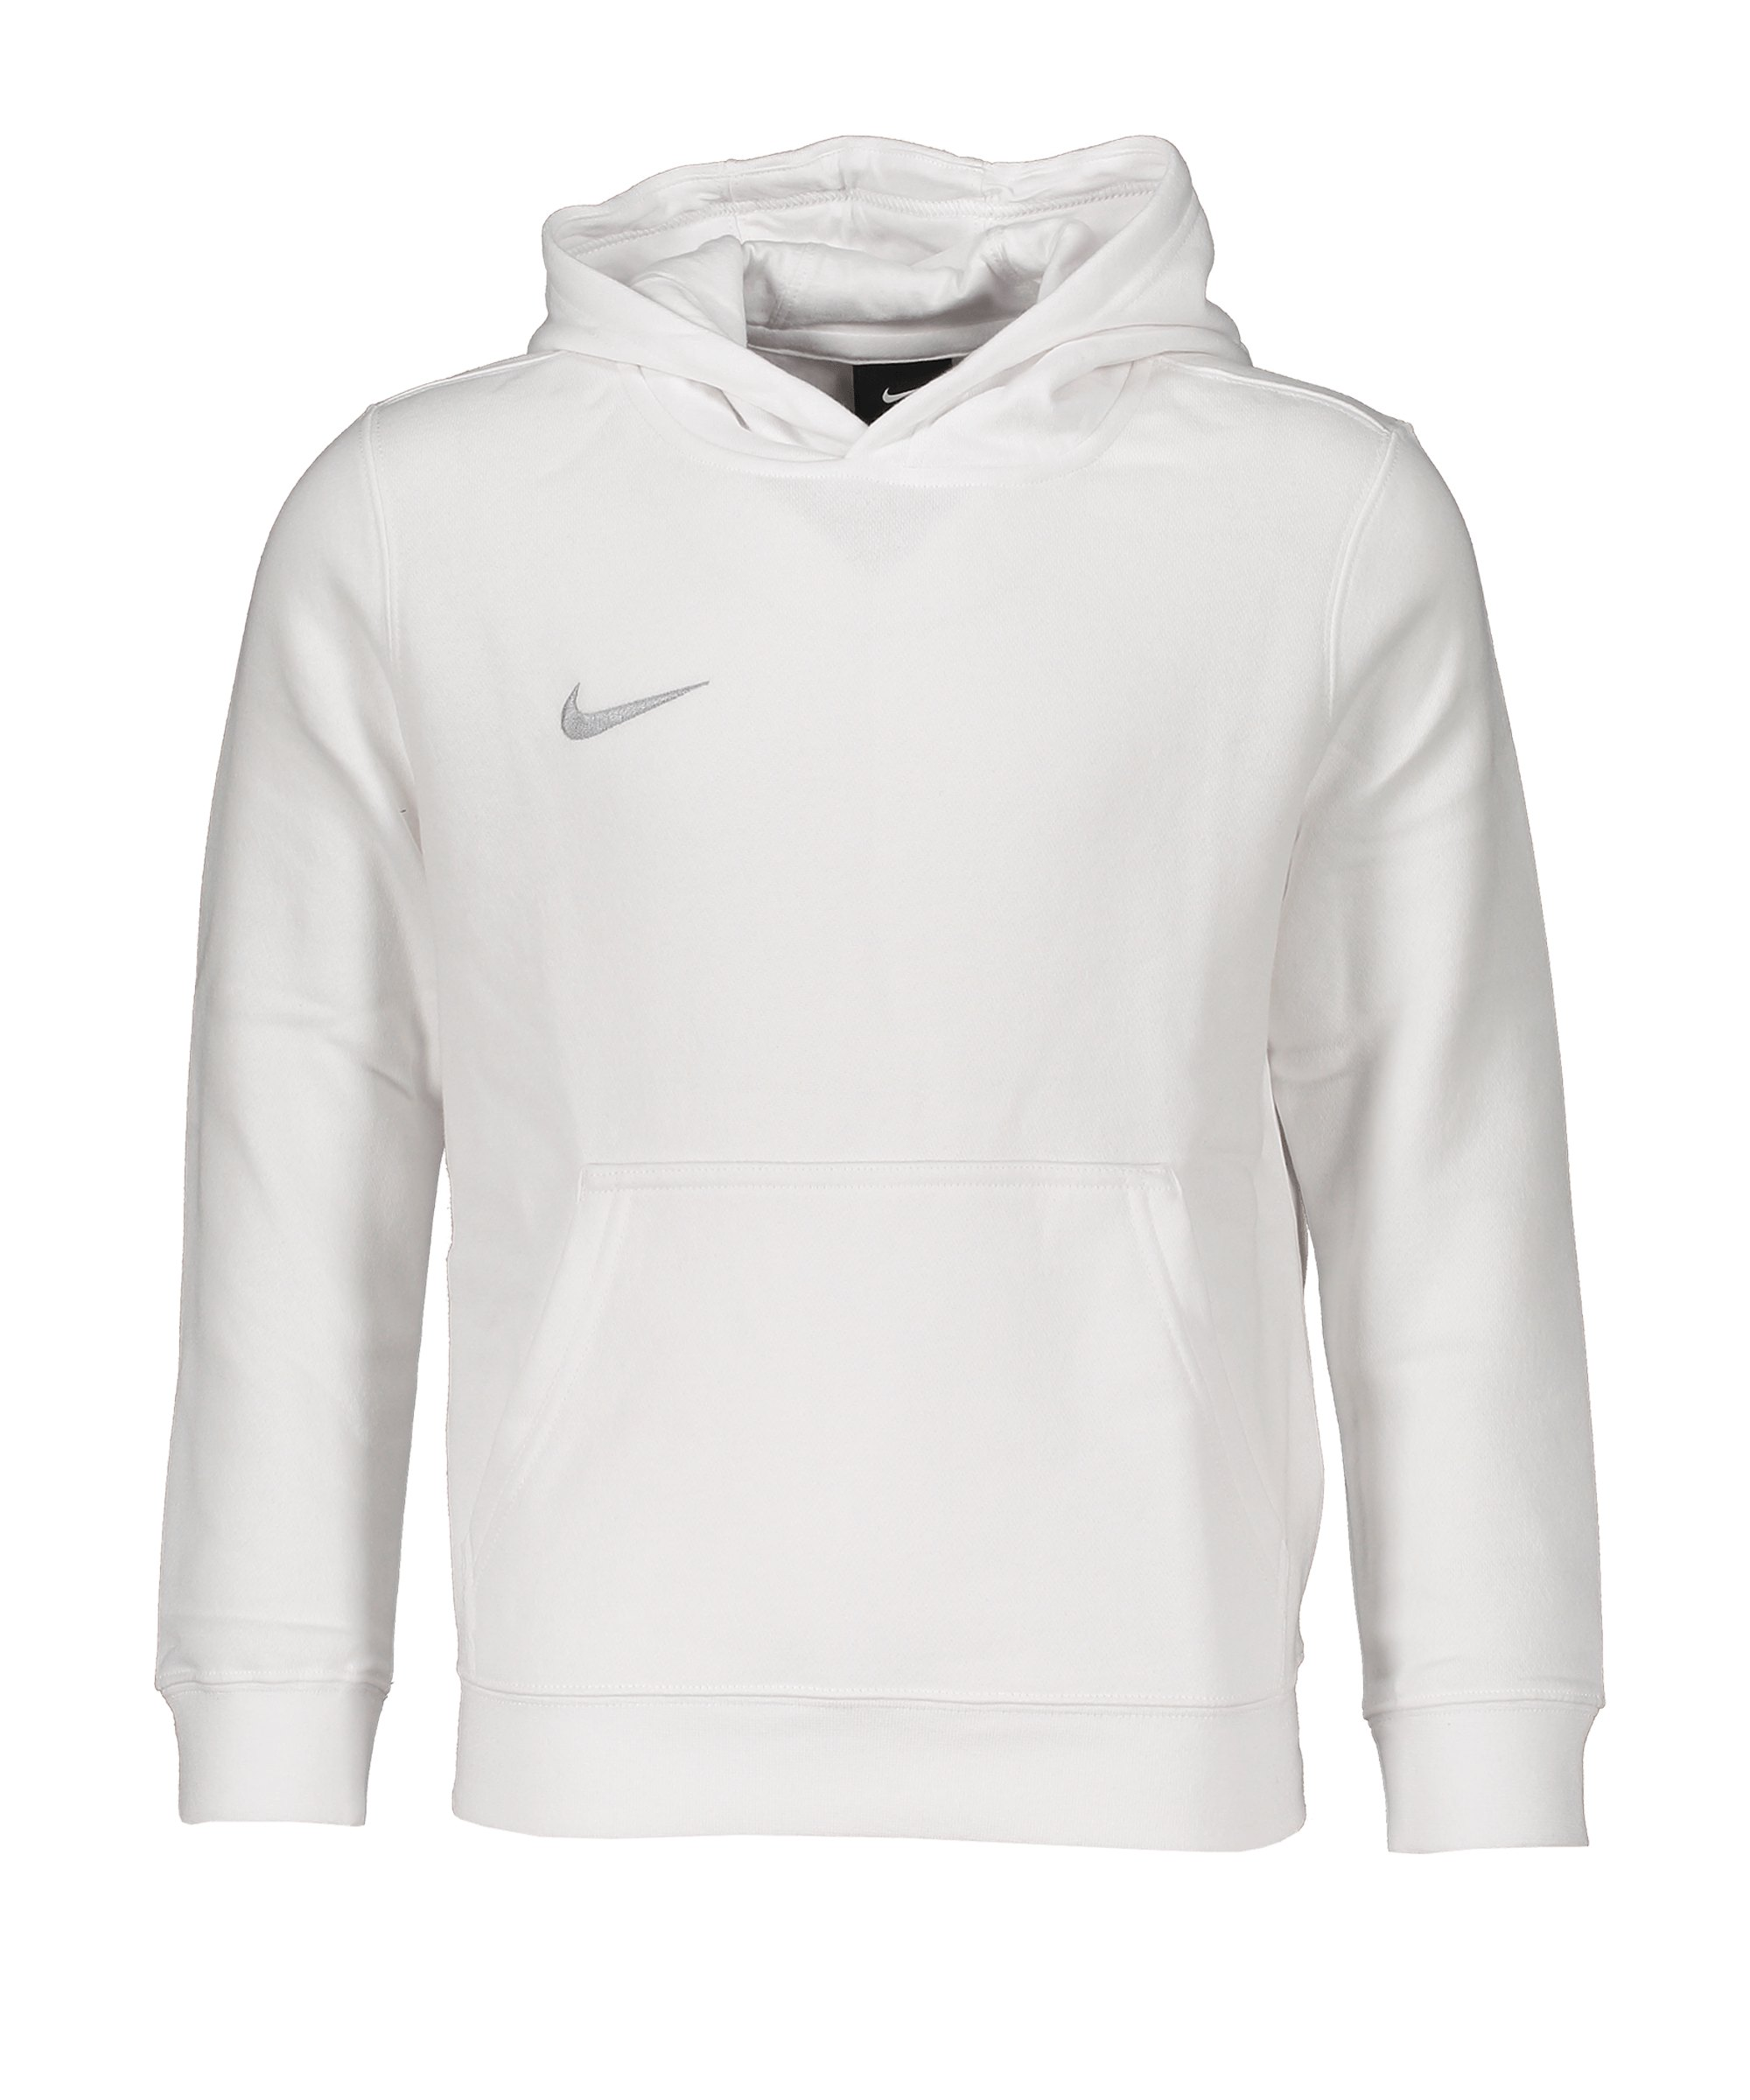 Nike Club 19 Fleece Hoody Kids Weiss F100 - weiss